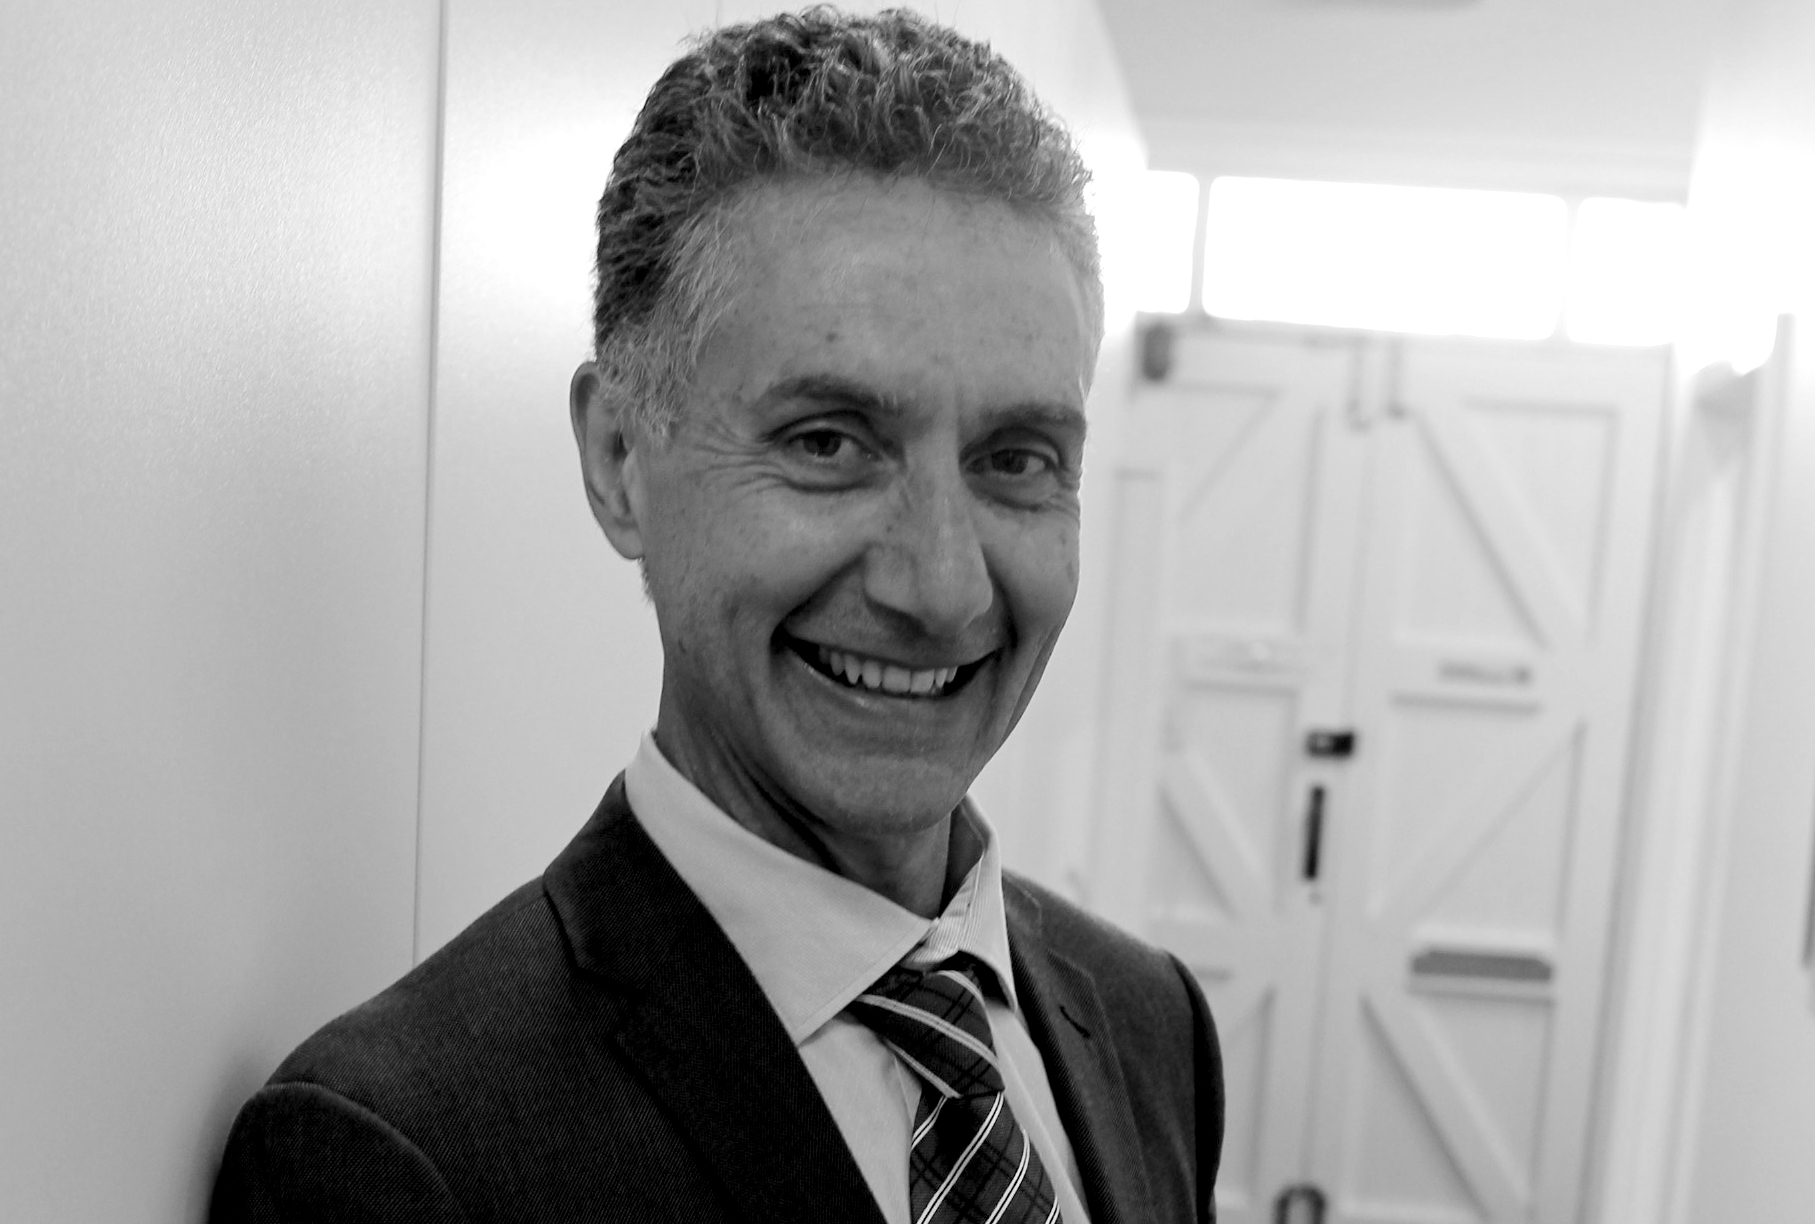 Dr Antonio Buti is a member of the Western Australian Parliament, Honorary Fellow at the Law School at the University of Western Australia and Adjunct Professor at the Law School of Murdoch University.